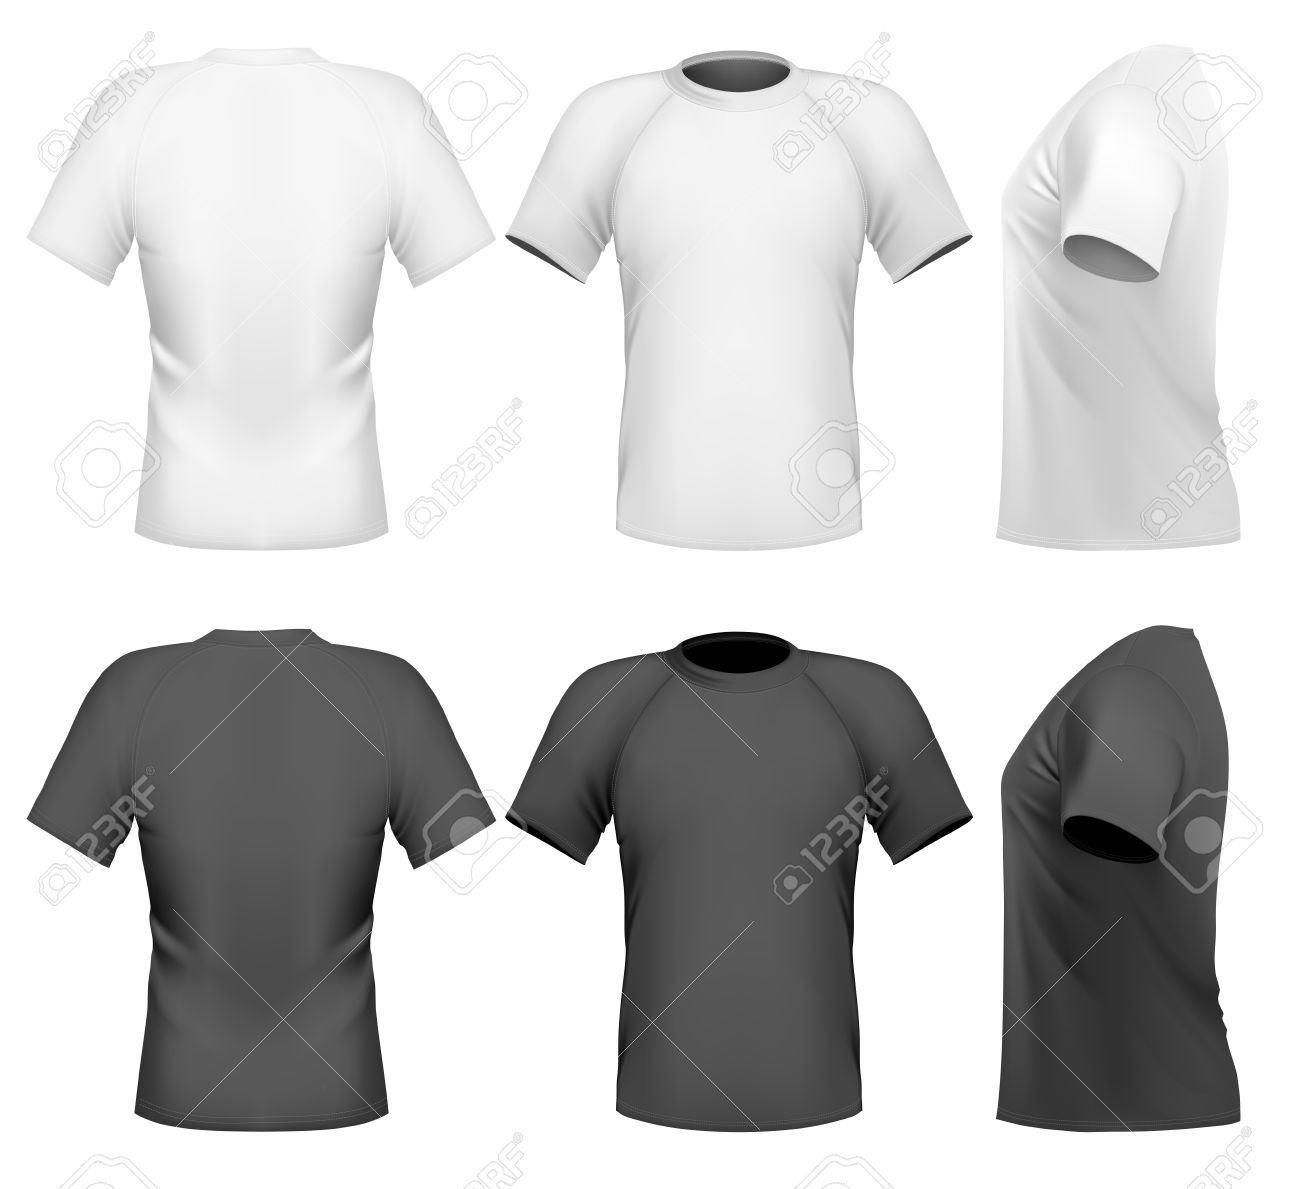 Charmant Vektor T Shirt Vorlage Fotos - Entry Level Resume Vorlagen ...